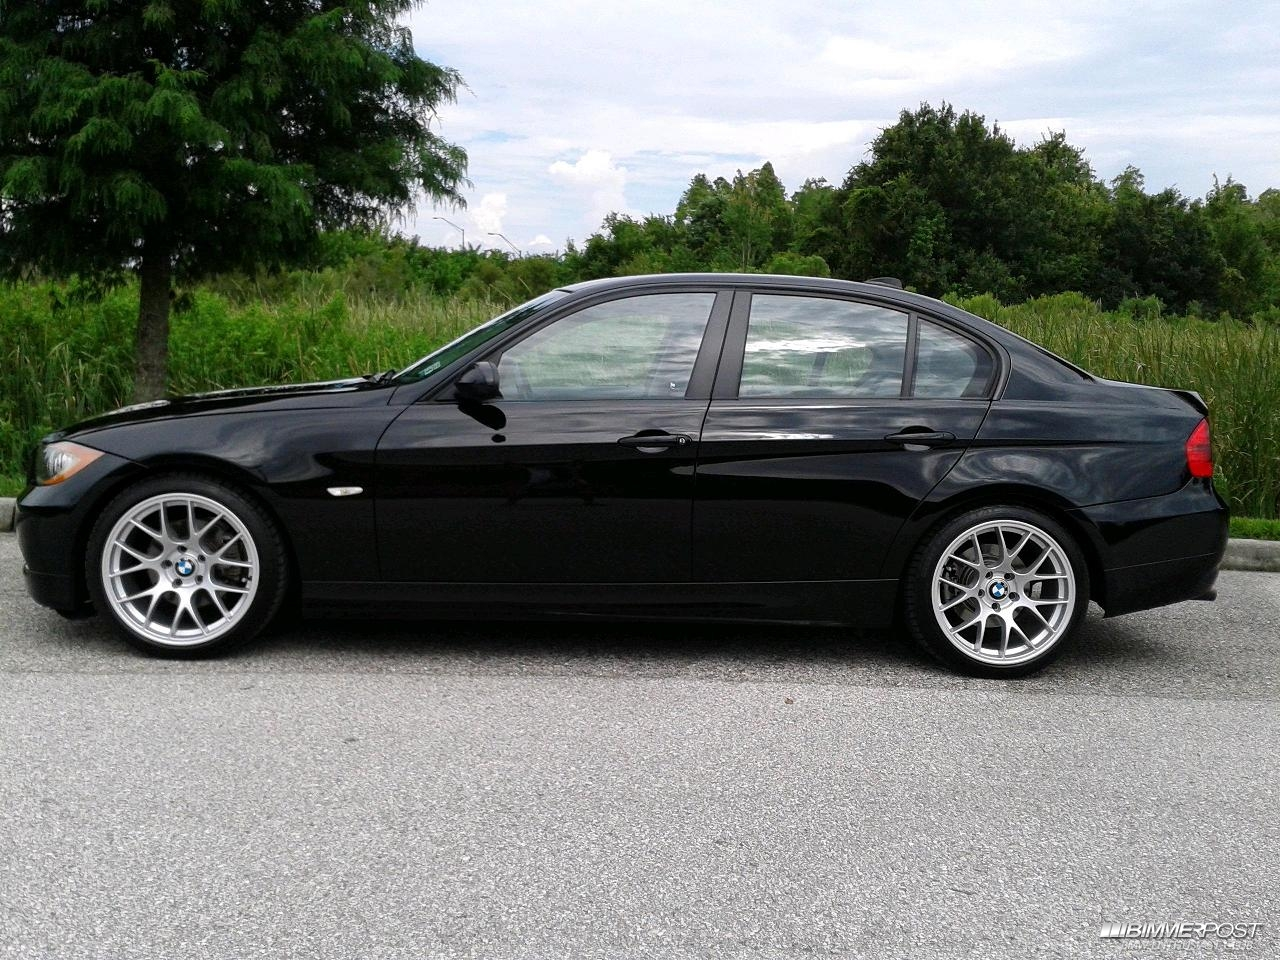 Mlifxs S 2007 Bmw 328i Sedan Bimmerpost Garage